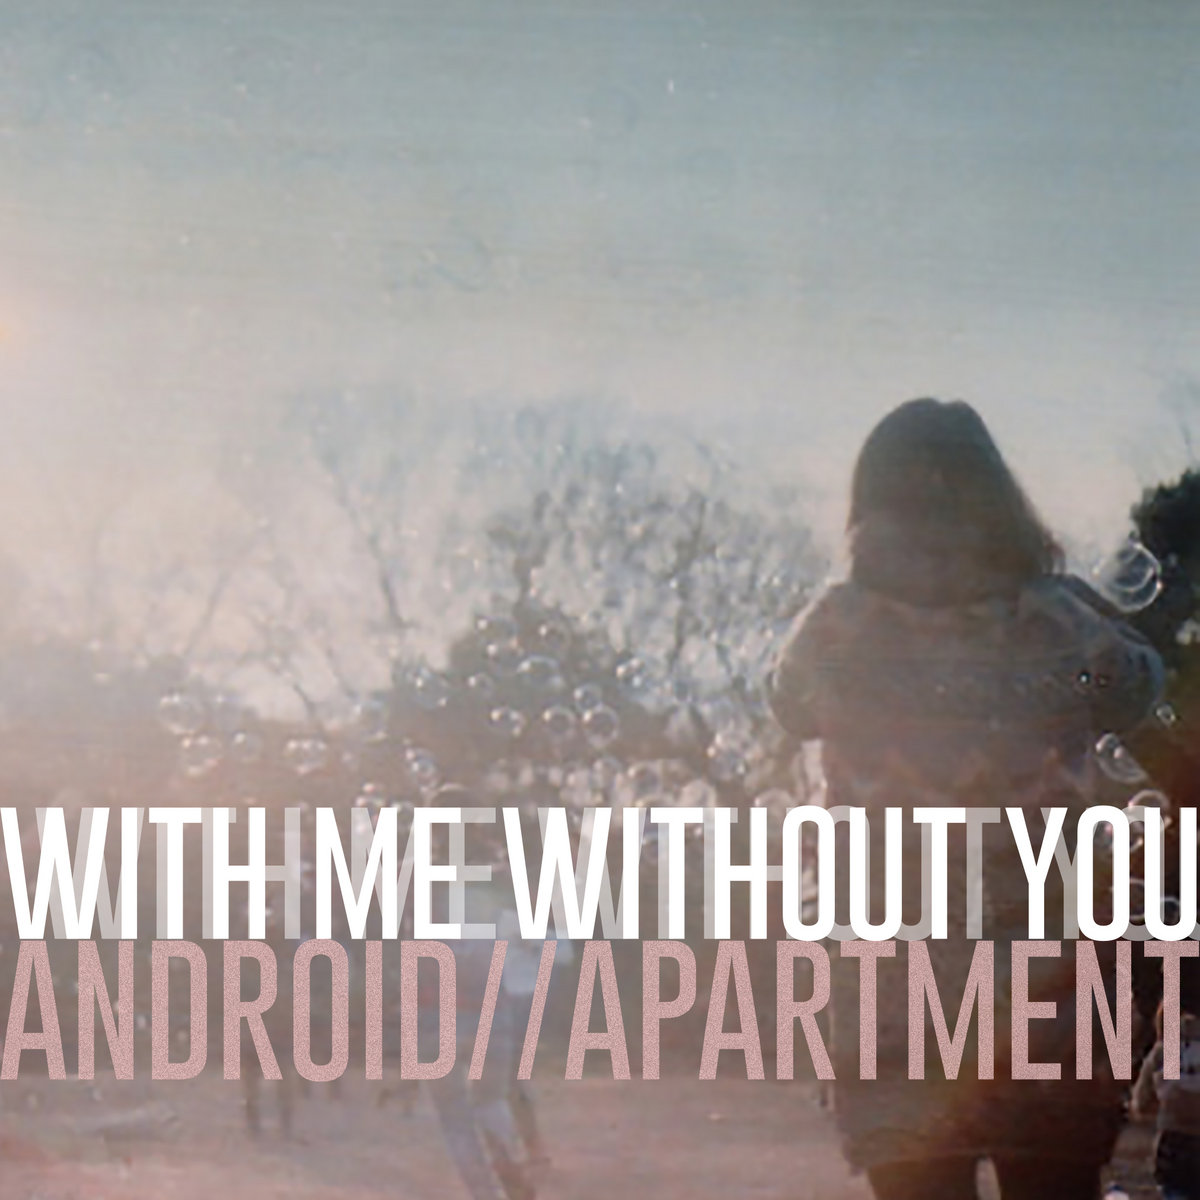 Dont Leave Me Alone 悲しい Android Apartment